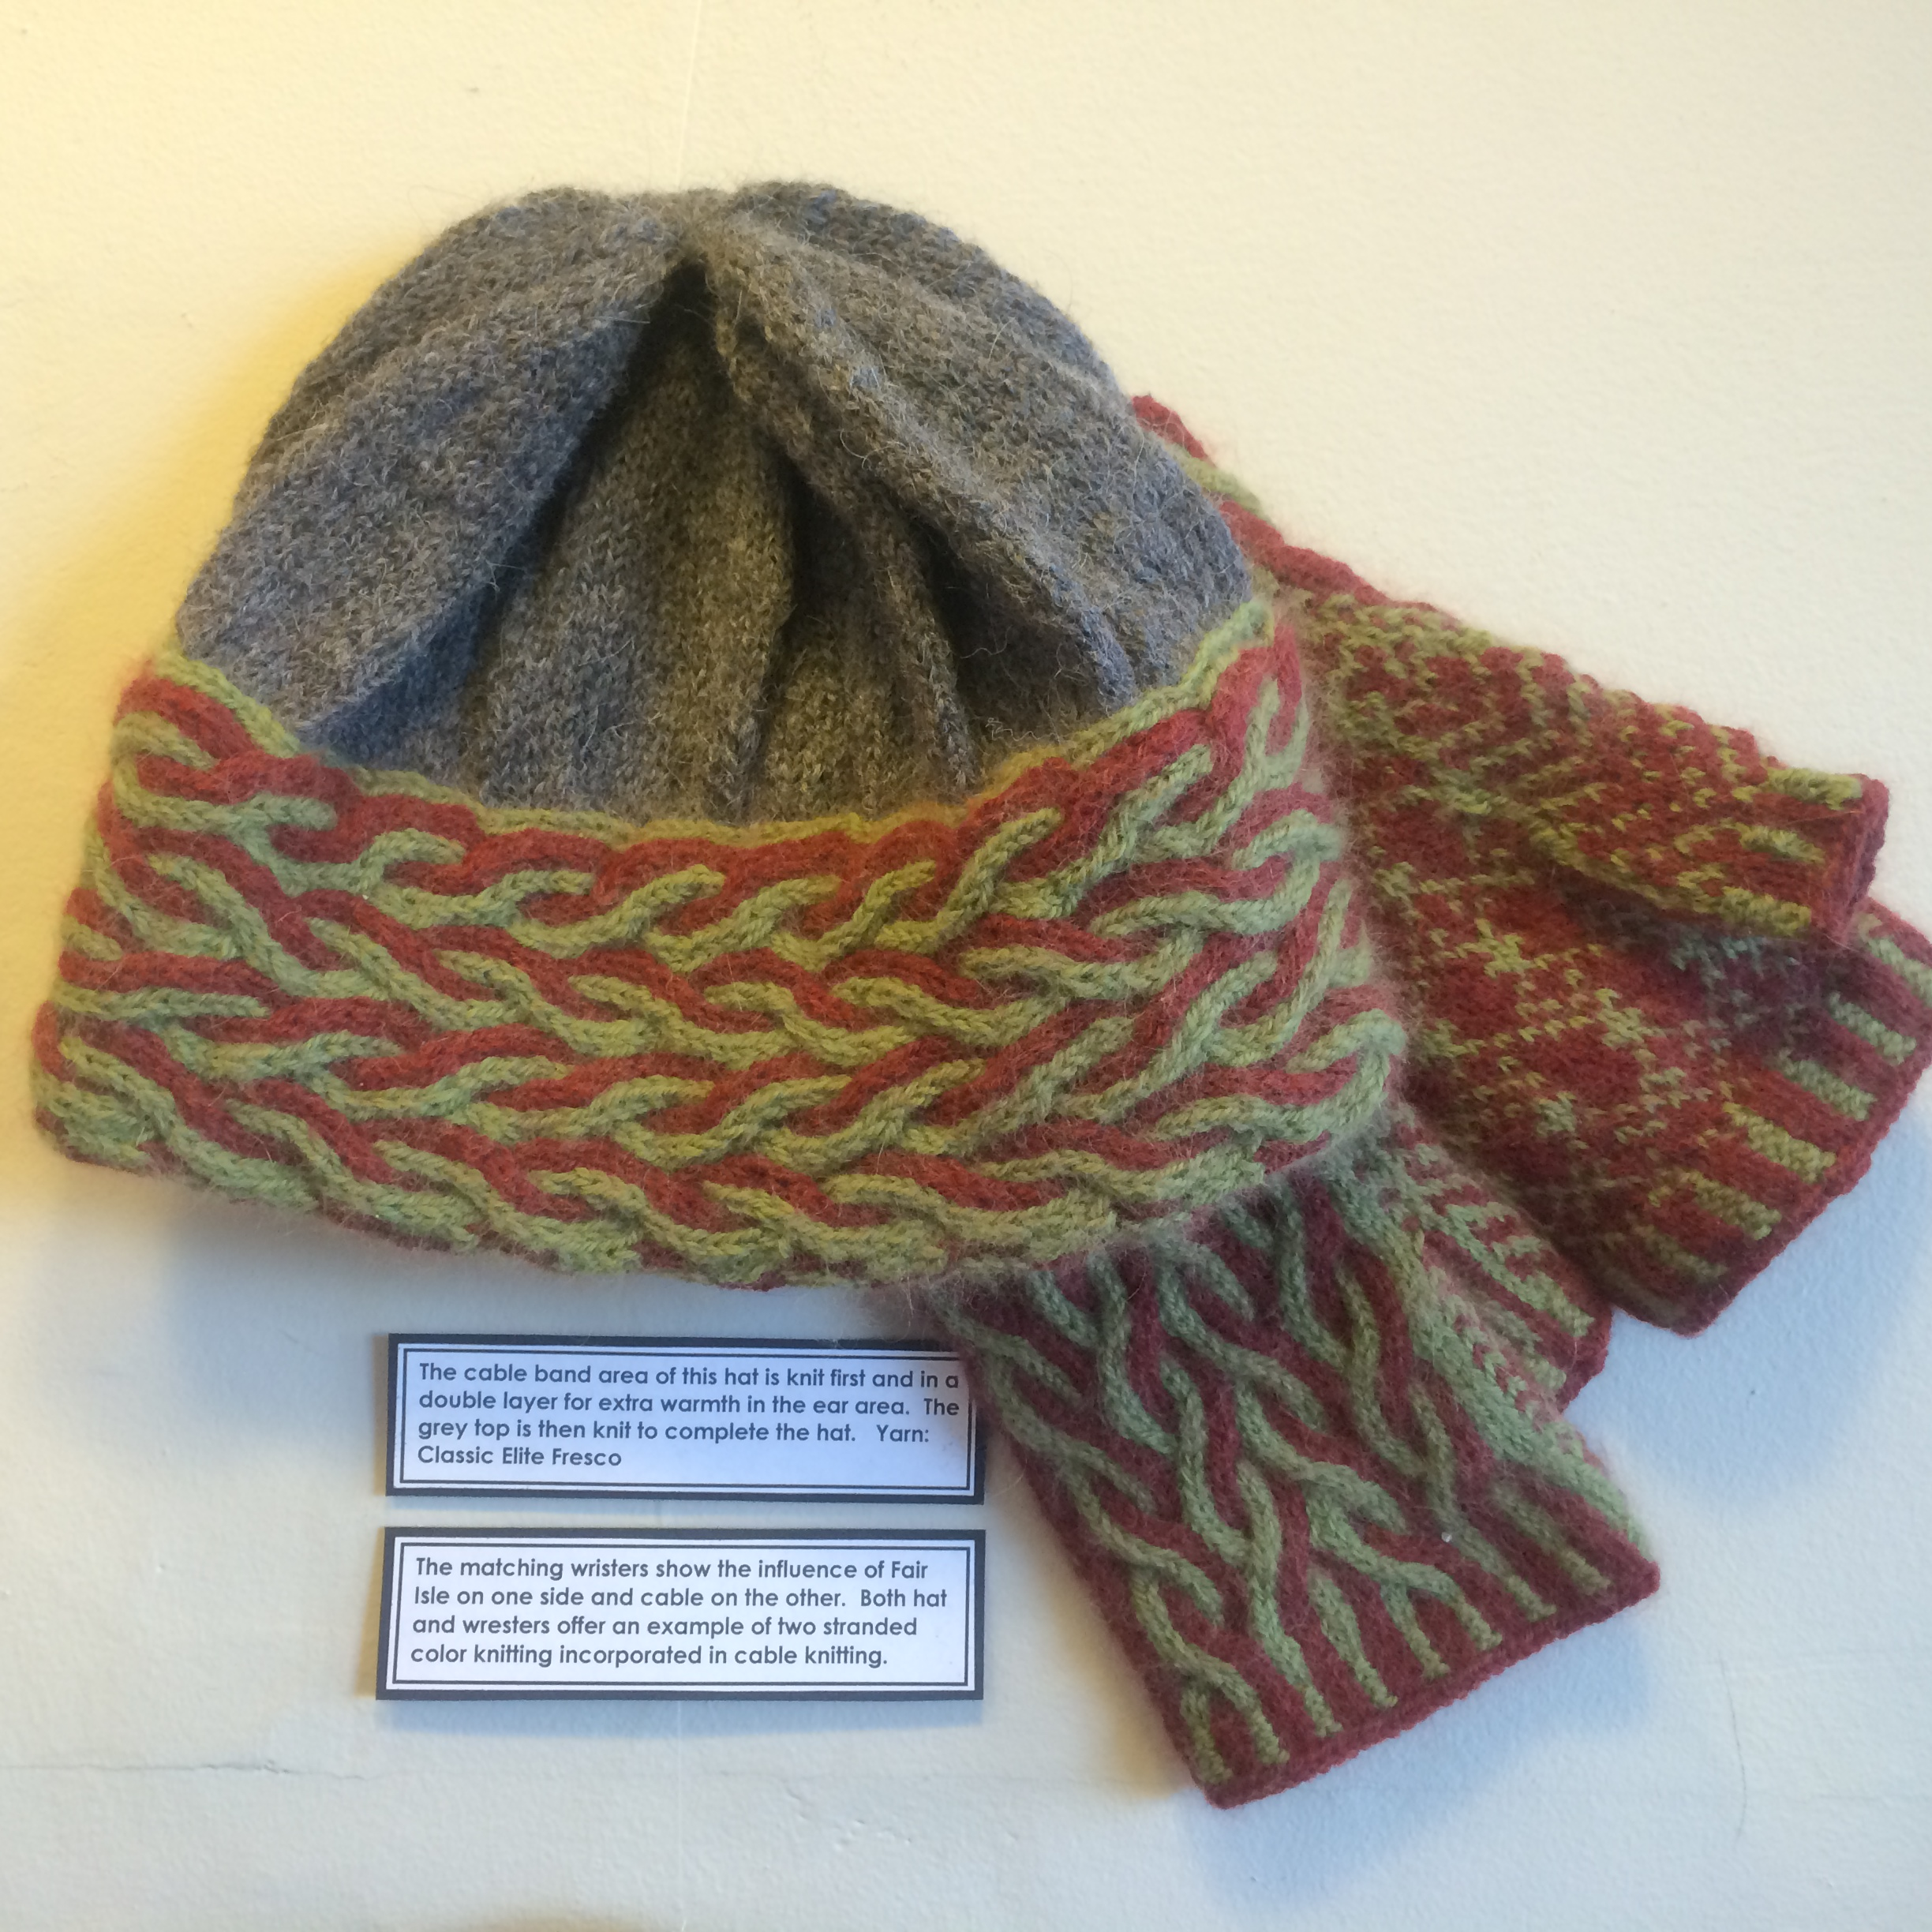 Knitting Brioche Stitch Hat : Latvian Mittens and ?No Knitting Police? Ingebretsens Knits